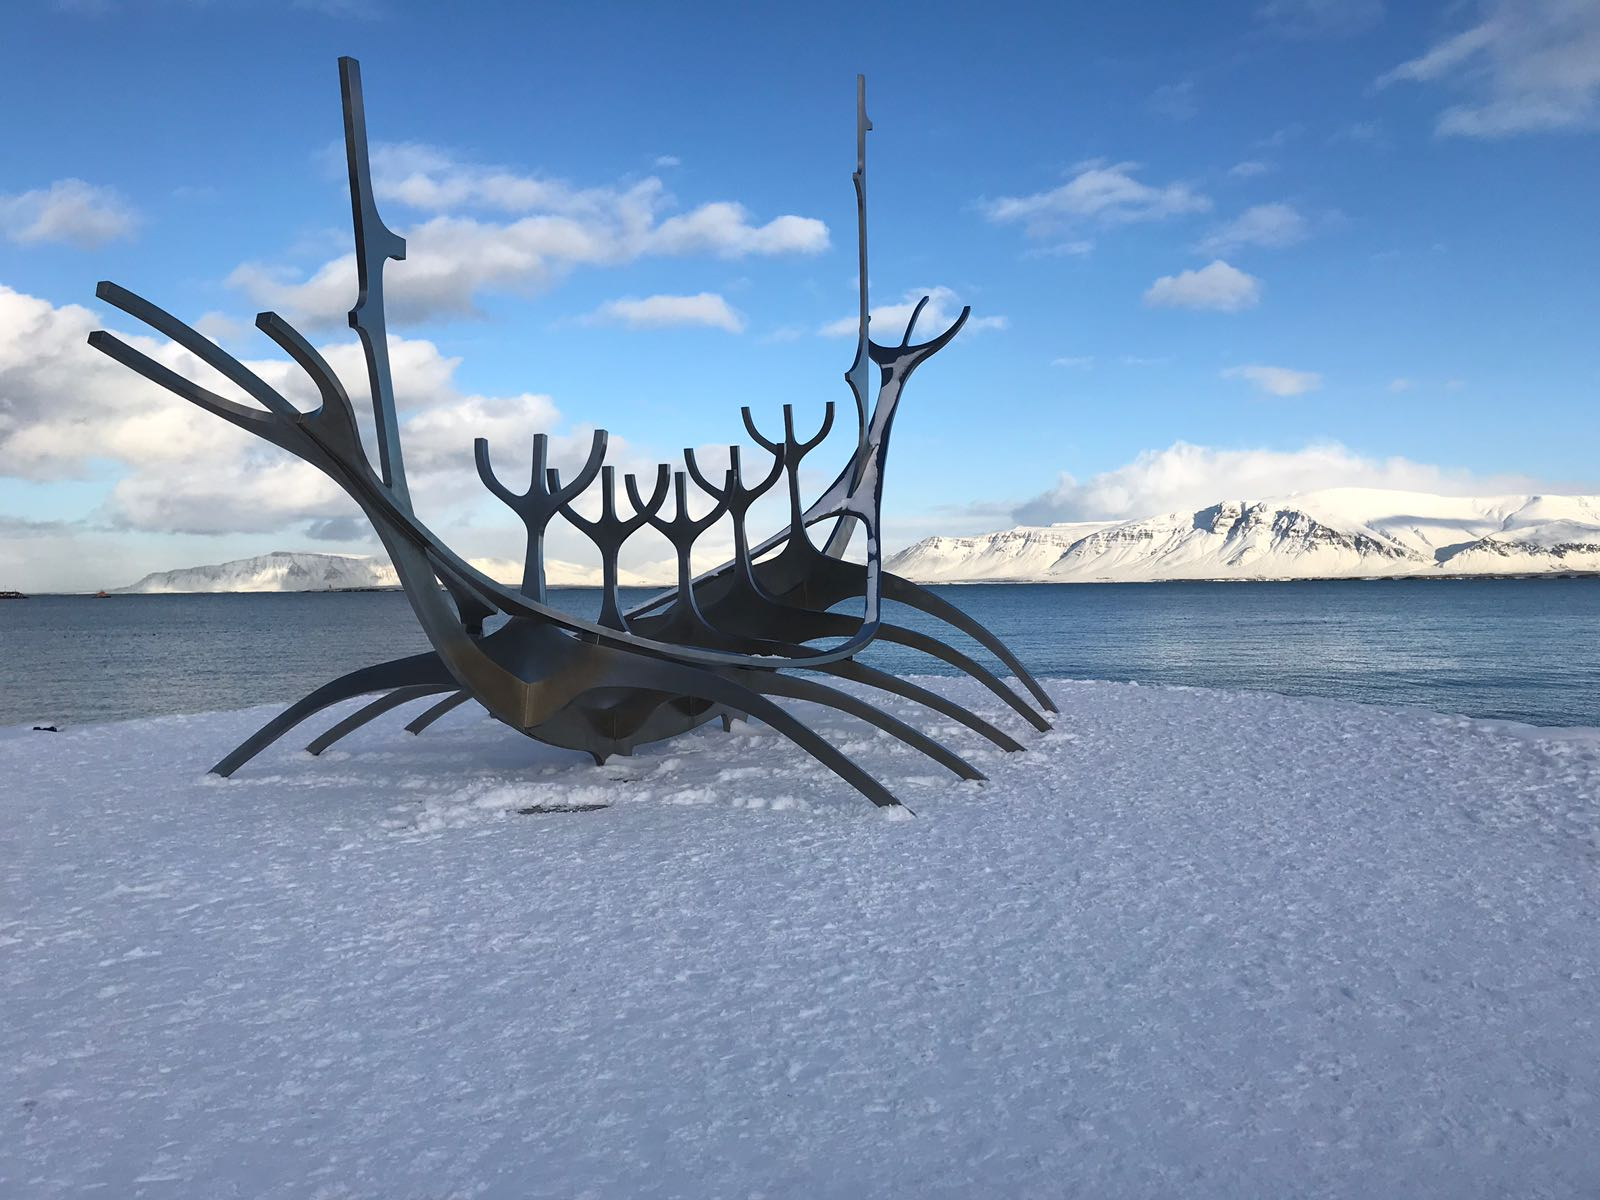 Image of Sun voyager statue in Reykjavik